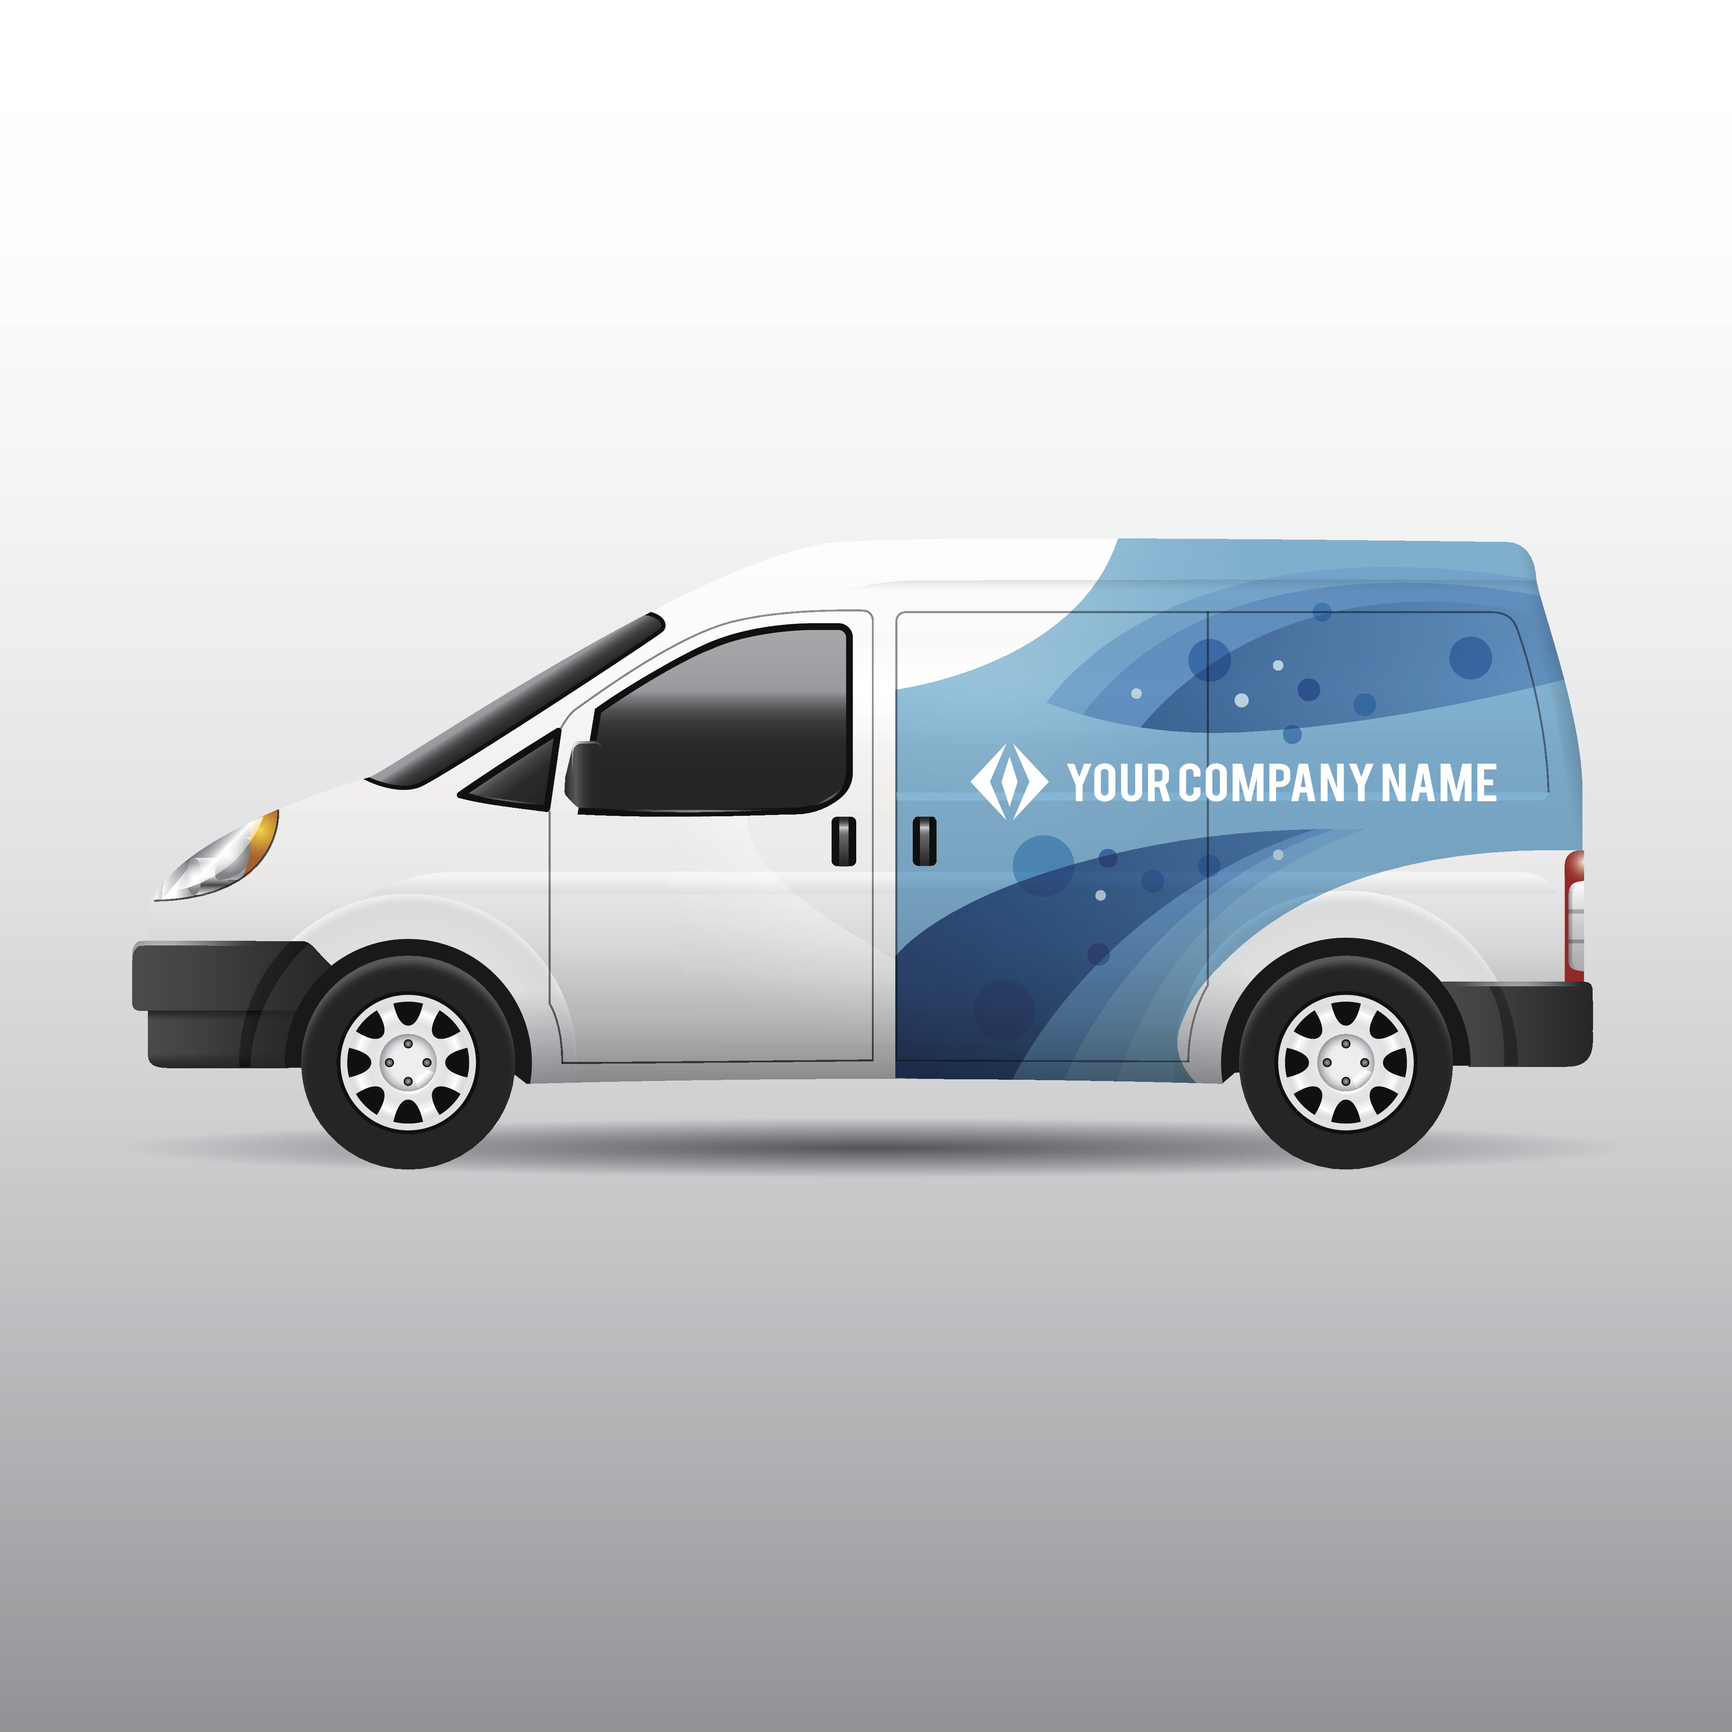 Advertisement Or Corporate Identity Design Template On White Van. For Business, Branding And Advertising Companies.